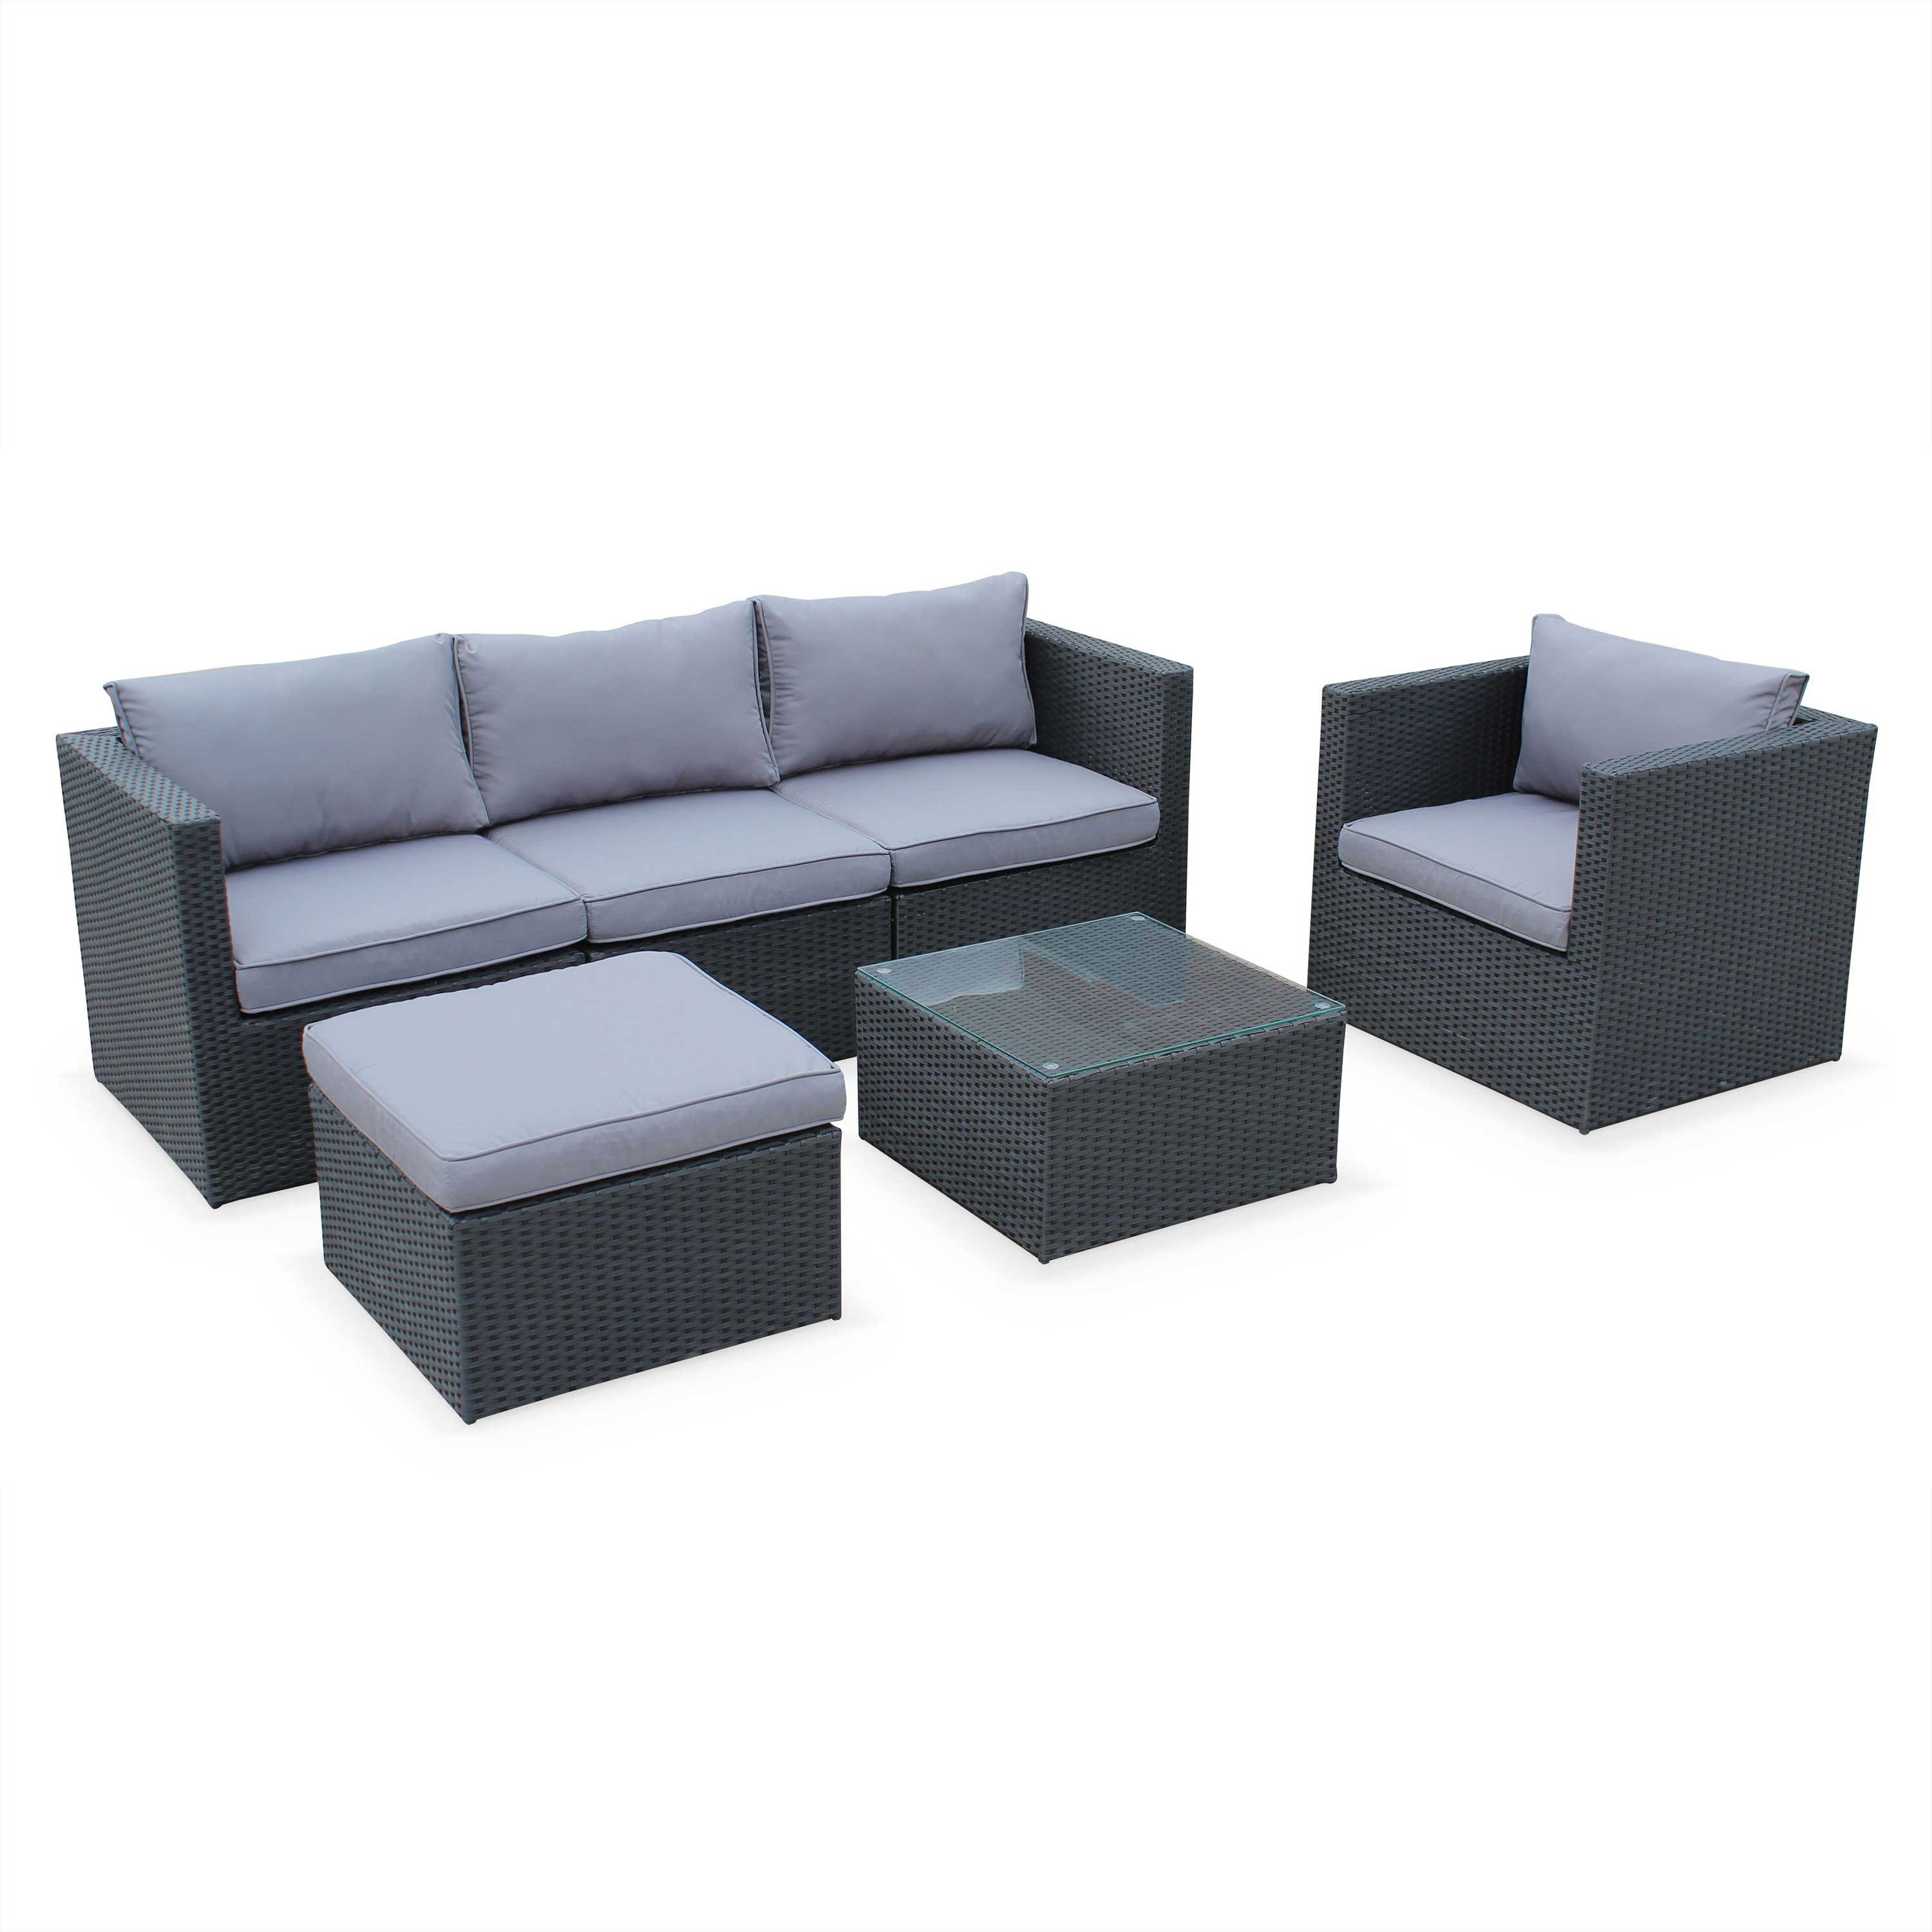 salon de jardin 5 places pas cher royal sofa id e de canap et meuble maison. Black Bedroom Furniture Sets. Home Design Ideas